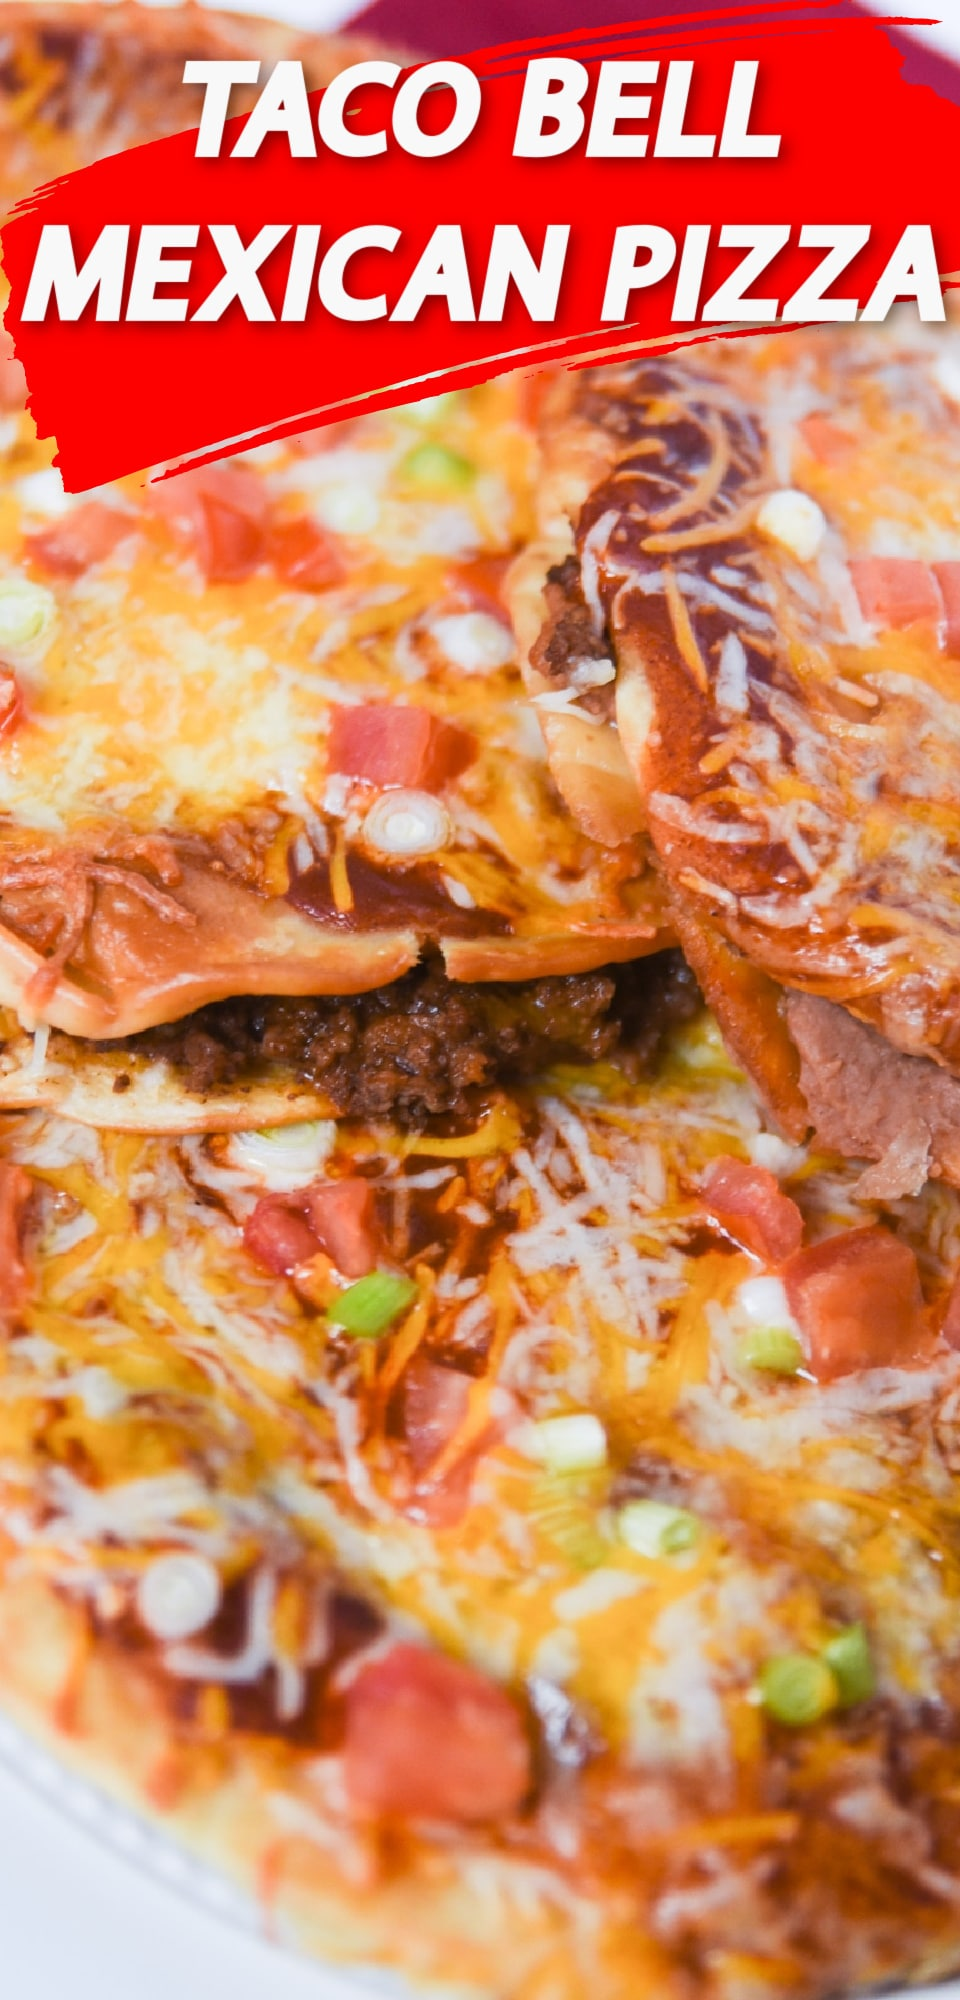 This copycat Taco Bell Mexican Pizza recipe is even better than the original. They are super easy to throw together and taste totally delicious. Perfect for people who are trying to avoid fast food but still get a craving for a Mexican Pizza from Taco Bell! via @clarkscondensed